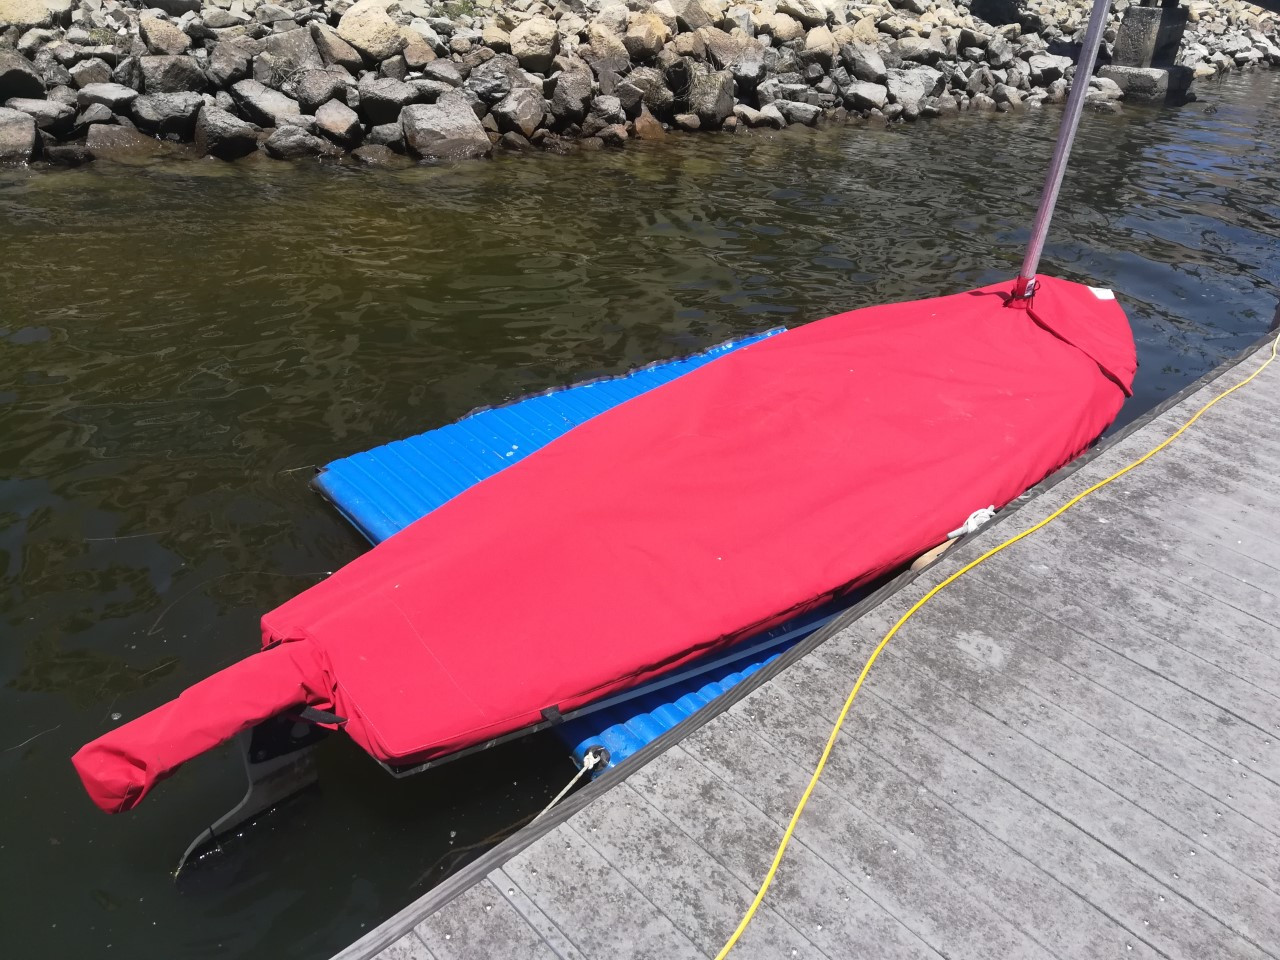 Dolphin Sr. Sailboat Mast Up Flat Cover made in America by skilled artisans at SLO Sail and Canvas. Cover shown in Sunbrella Jockey Red. Available in 3 fabrics and many color choices.